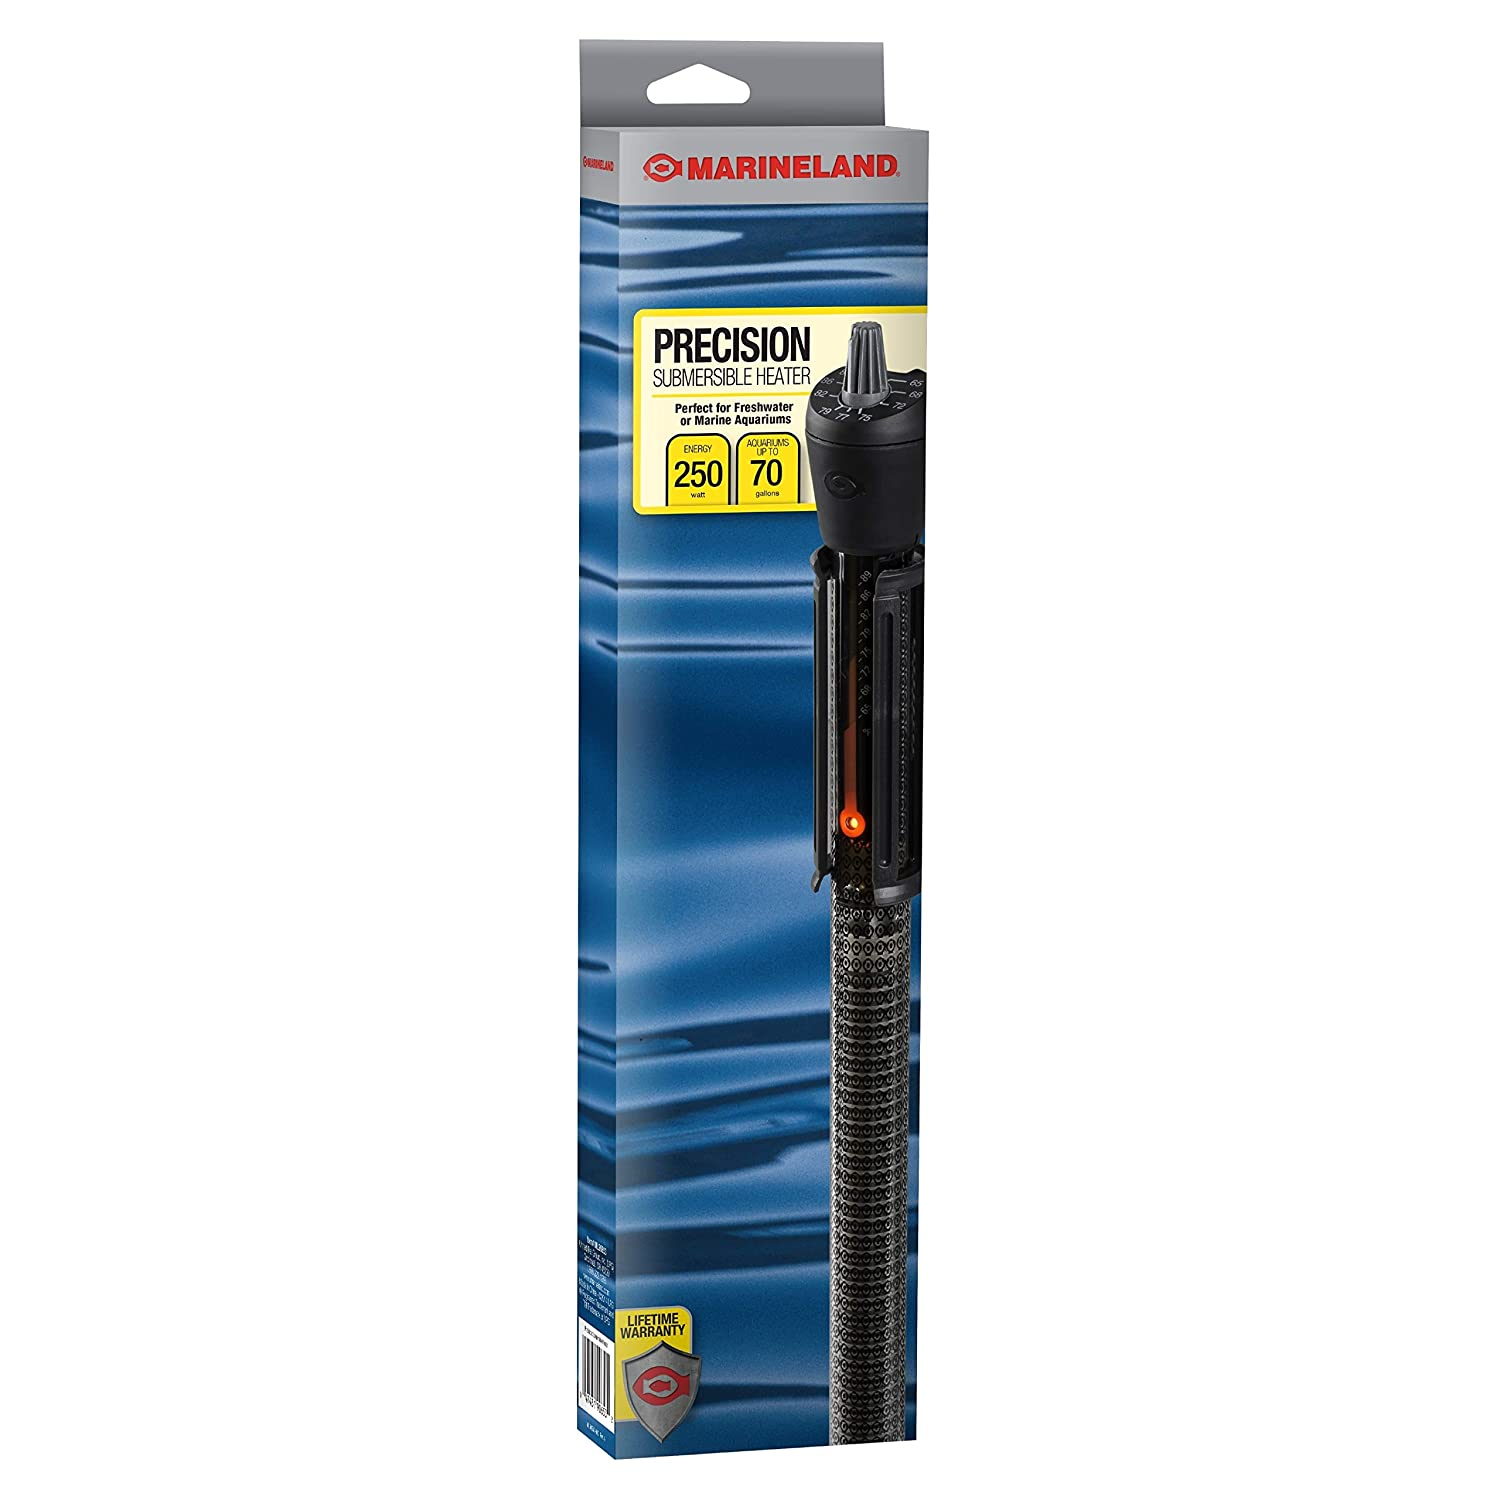 250-watt Marineland Precision Submersible Heater, For Freshwater or Saltwater Aquariums